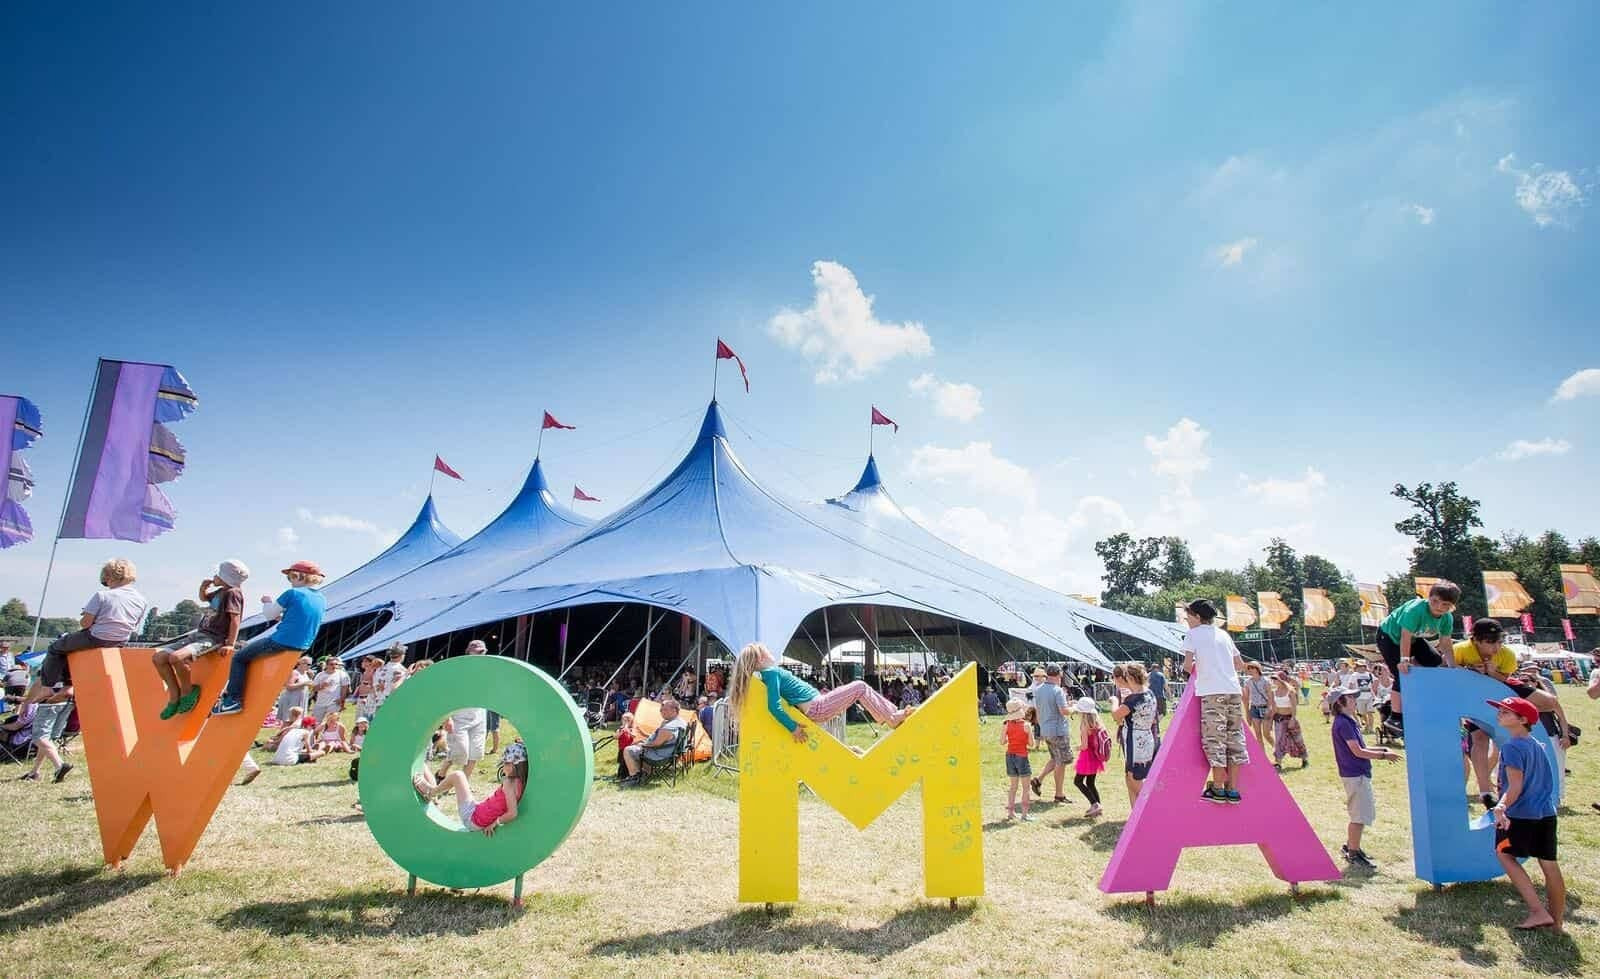 WOMAD The World's Festival Has Announced First Wave Of Artists